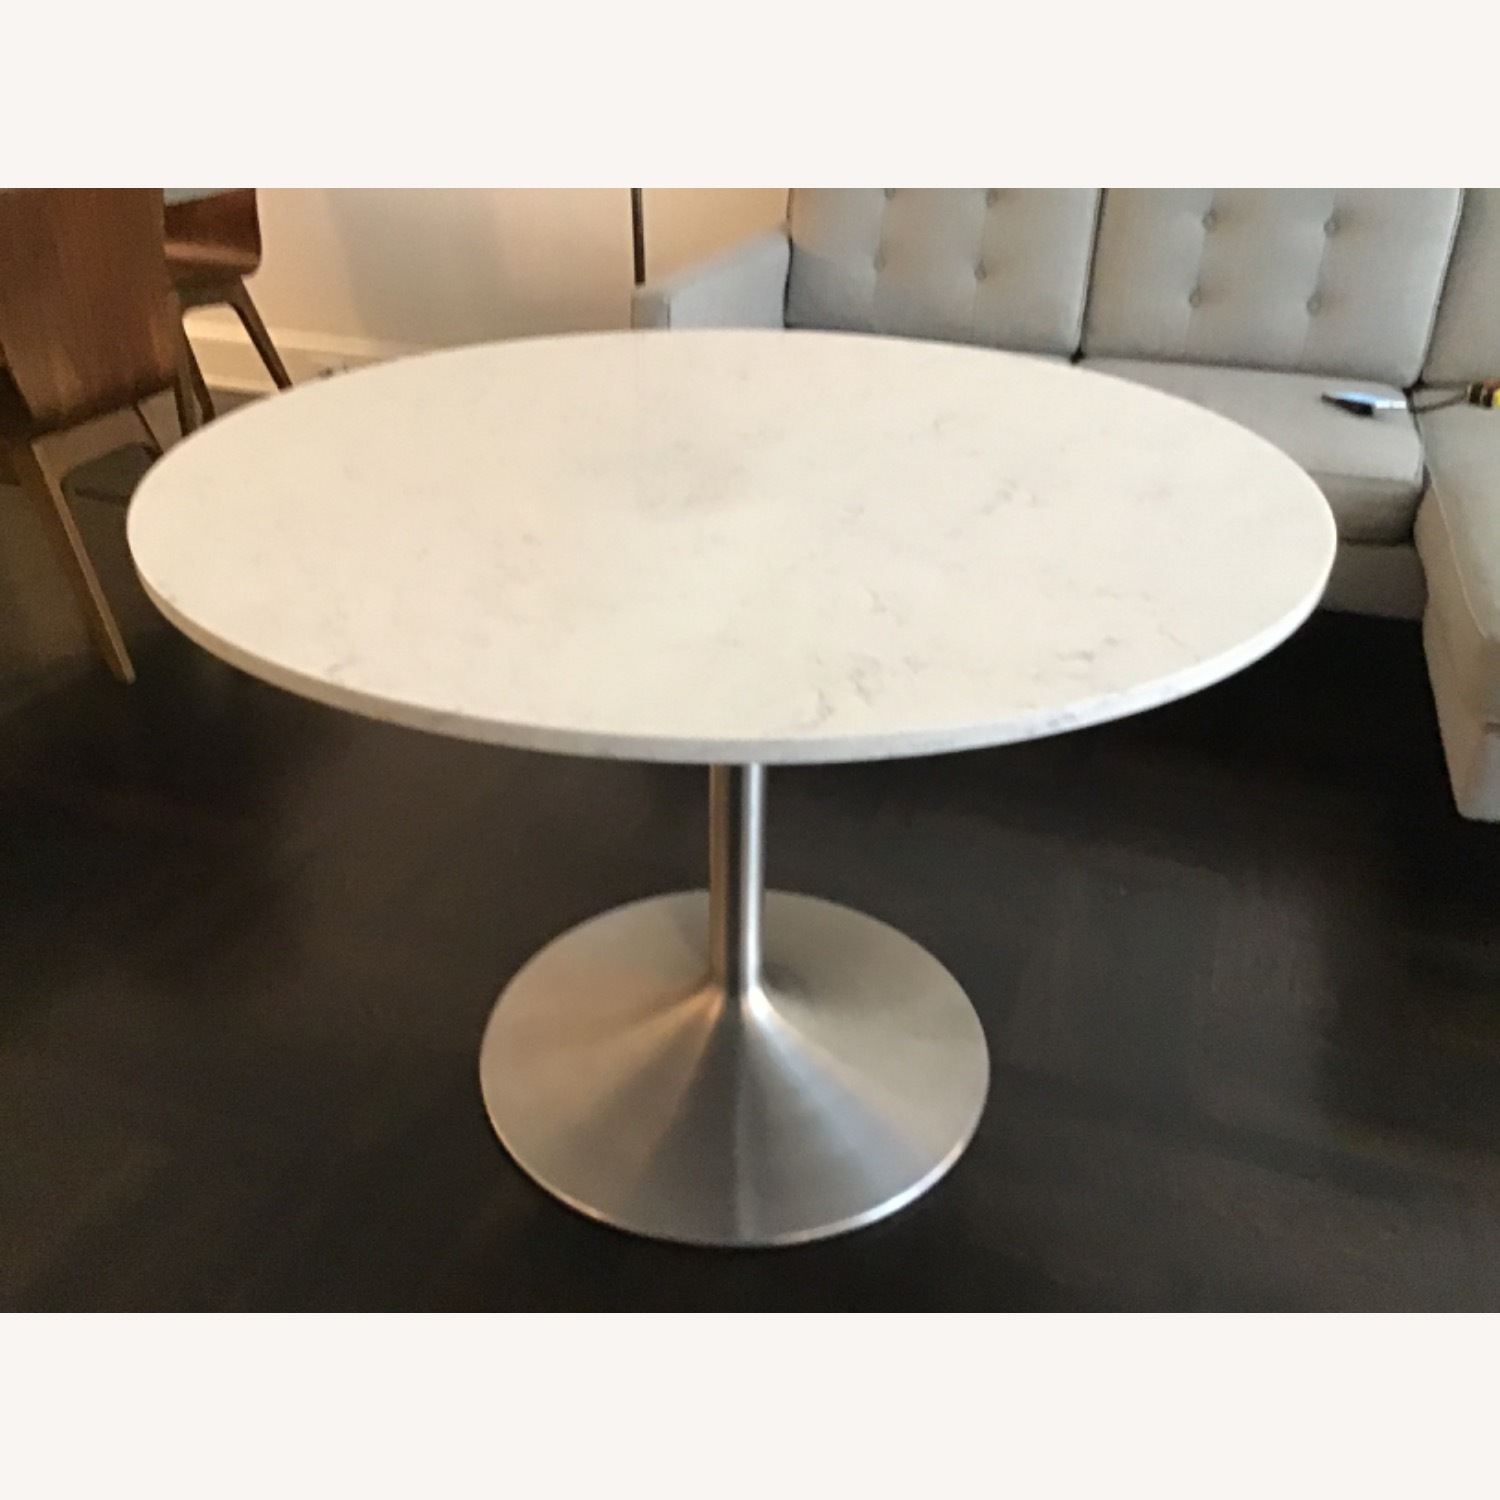 Room & Board Aria Marble Round Dining Table - image-3